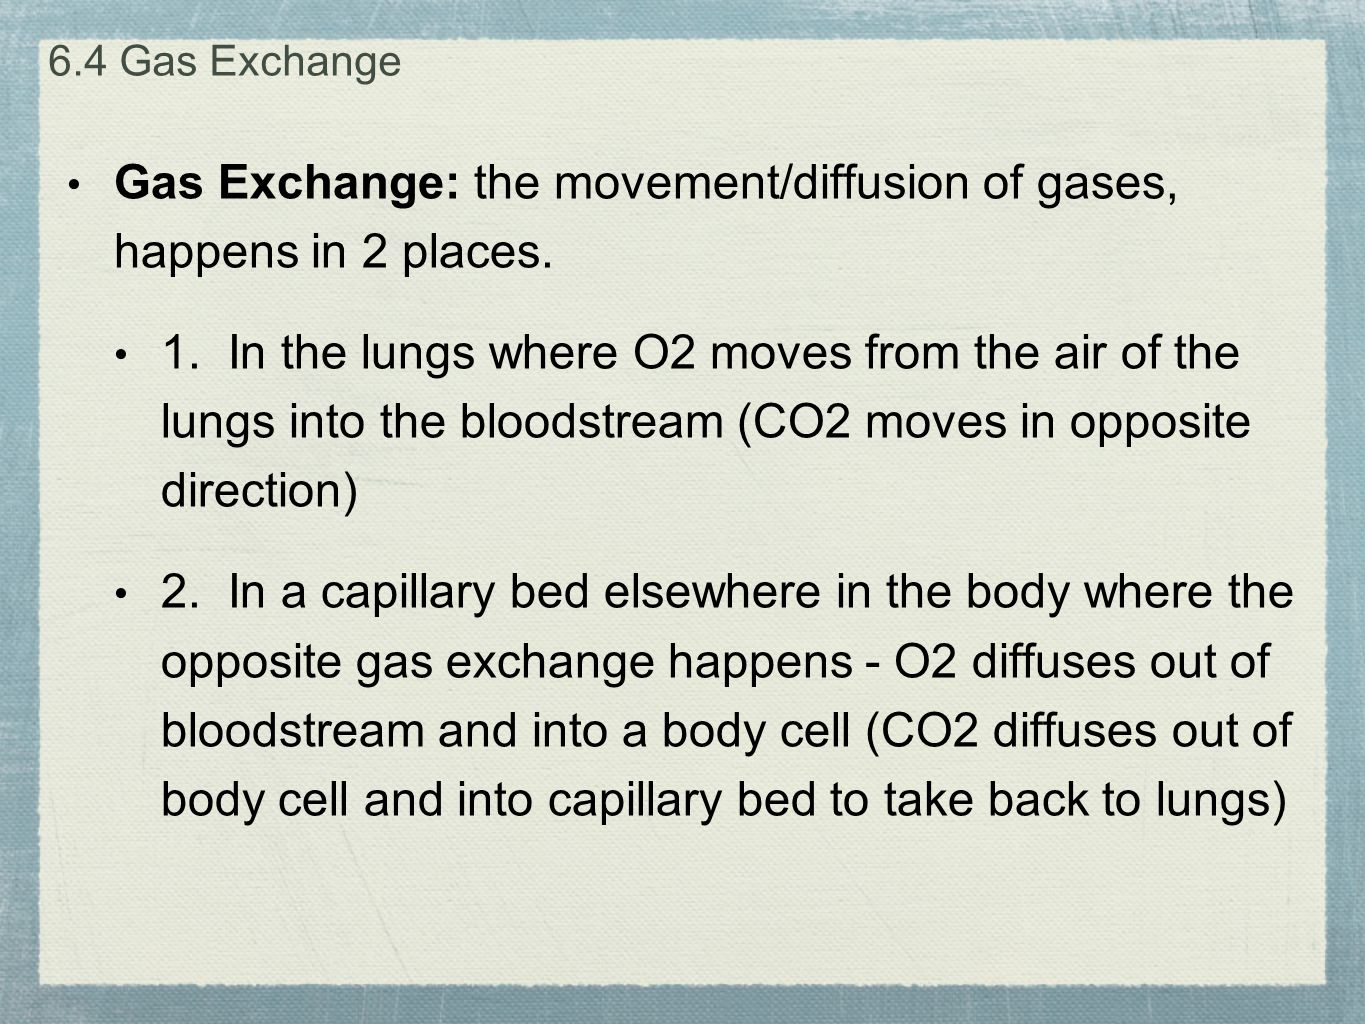 Gas Exchange: the movement/diffusion of gases, happens in 2 places. 1. In the lungs where O2 moves from the air of the lungs into the bloodstream (CO2